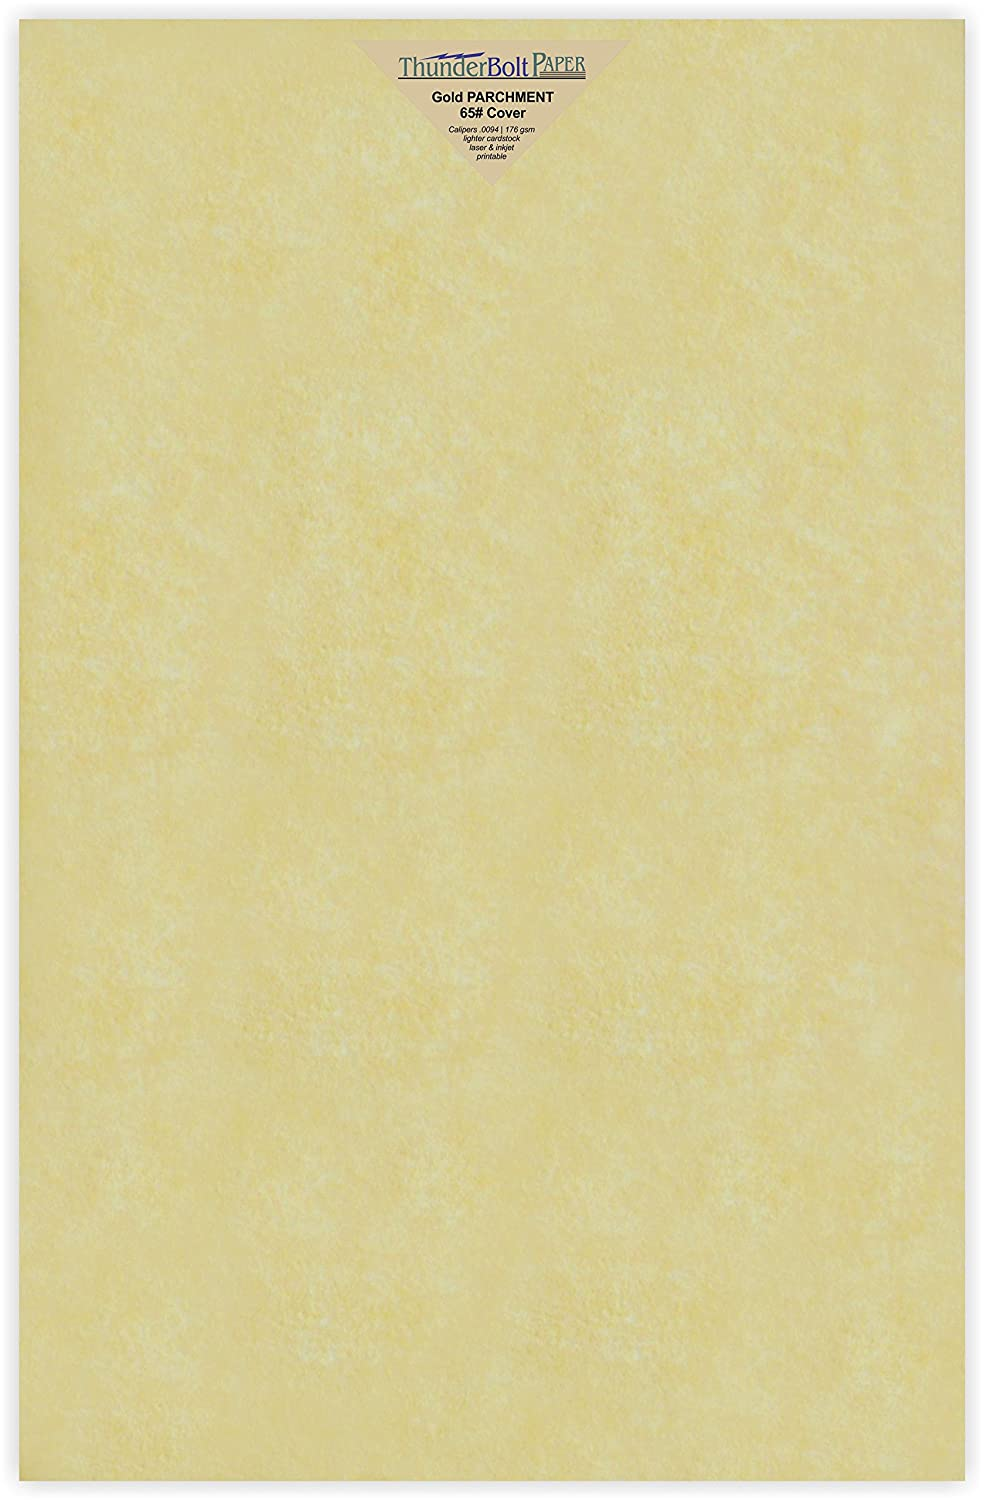 25 Gold Parchment 65lb Cover Weight Paper - 12 X 18 (12X18 Inches) Large|Poster Size - Printable Cardstock Colored Sheets Old Parchment Semblance TBP